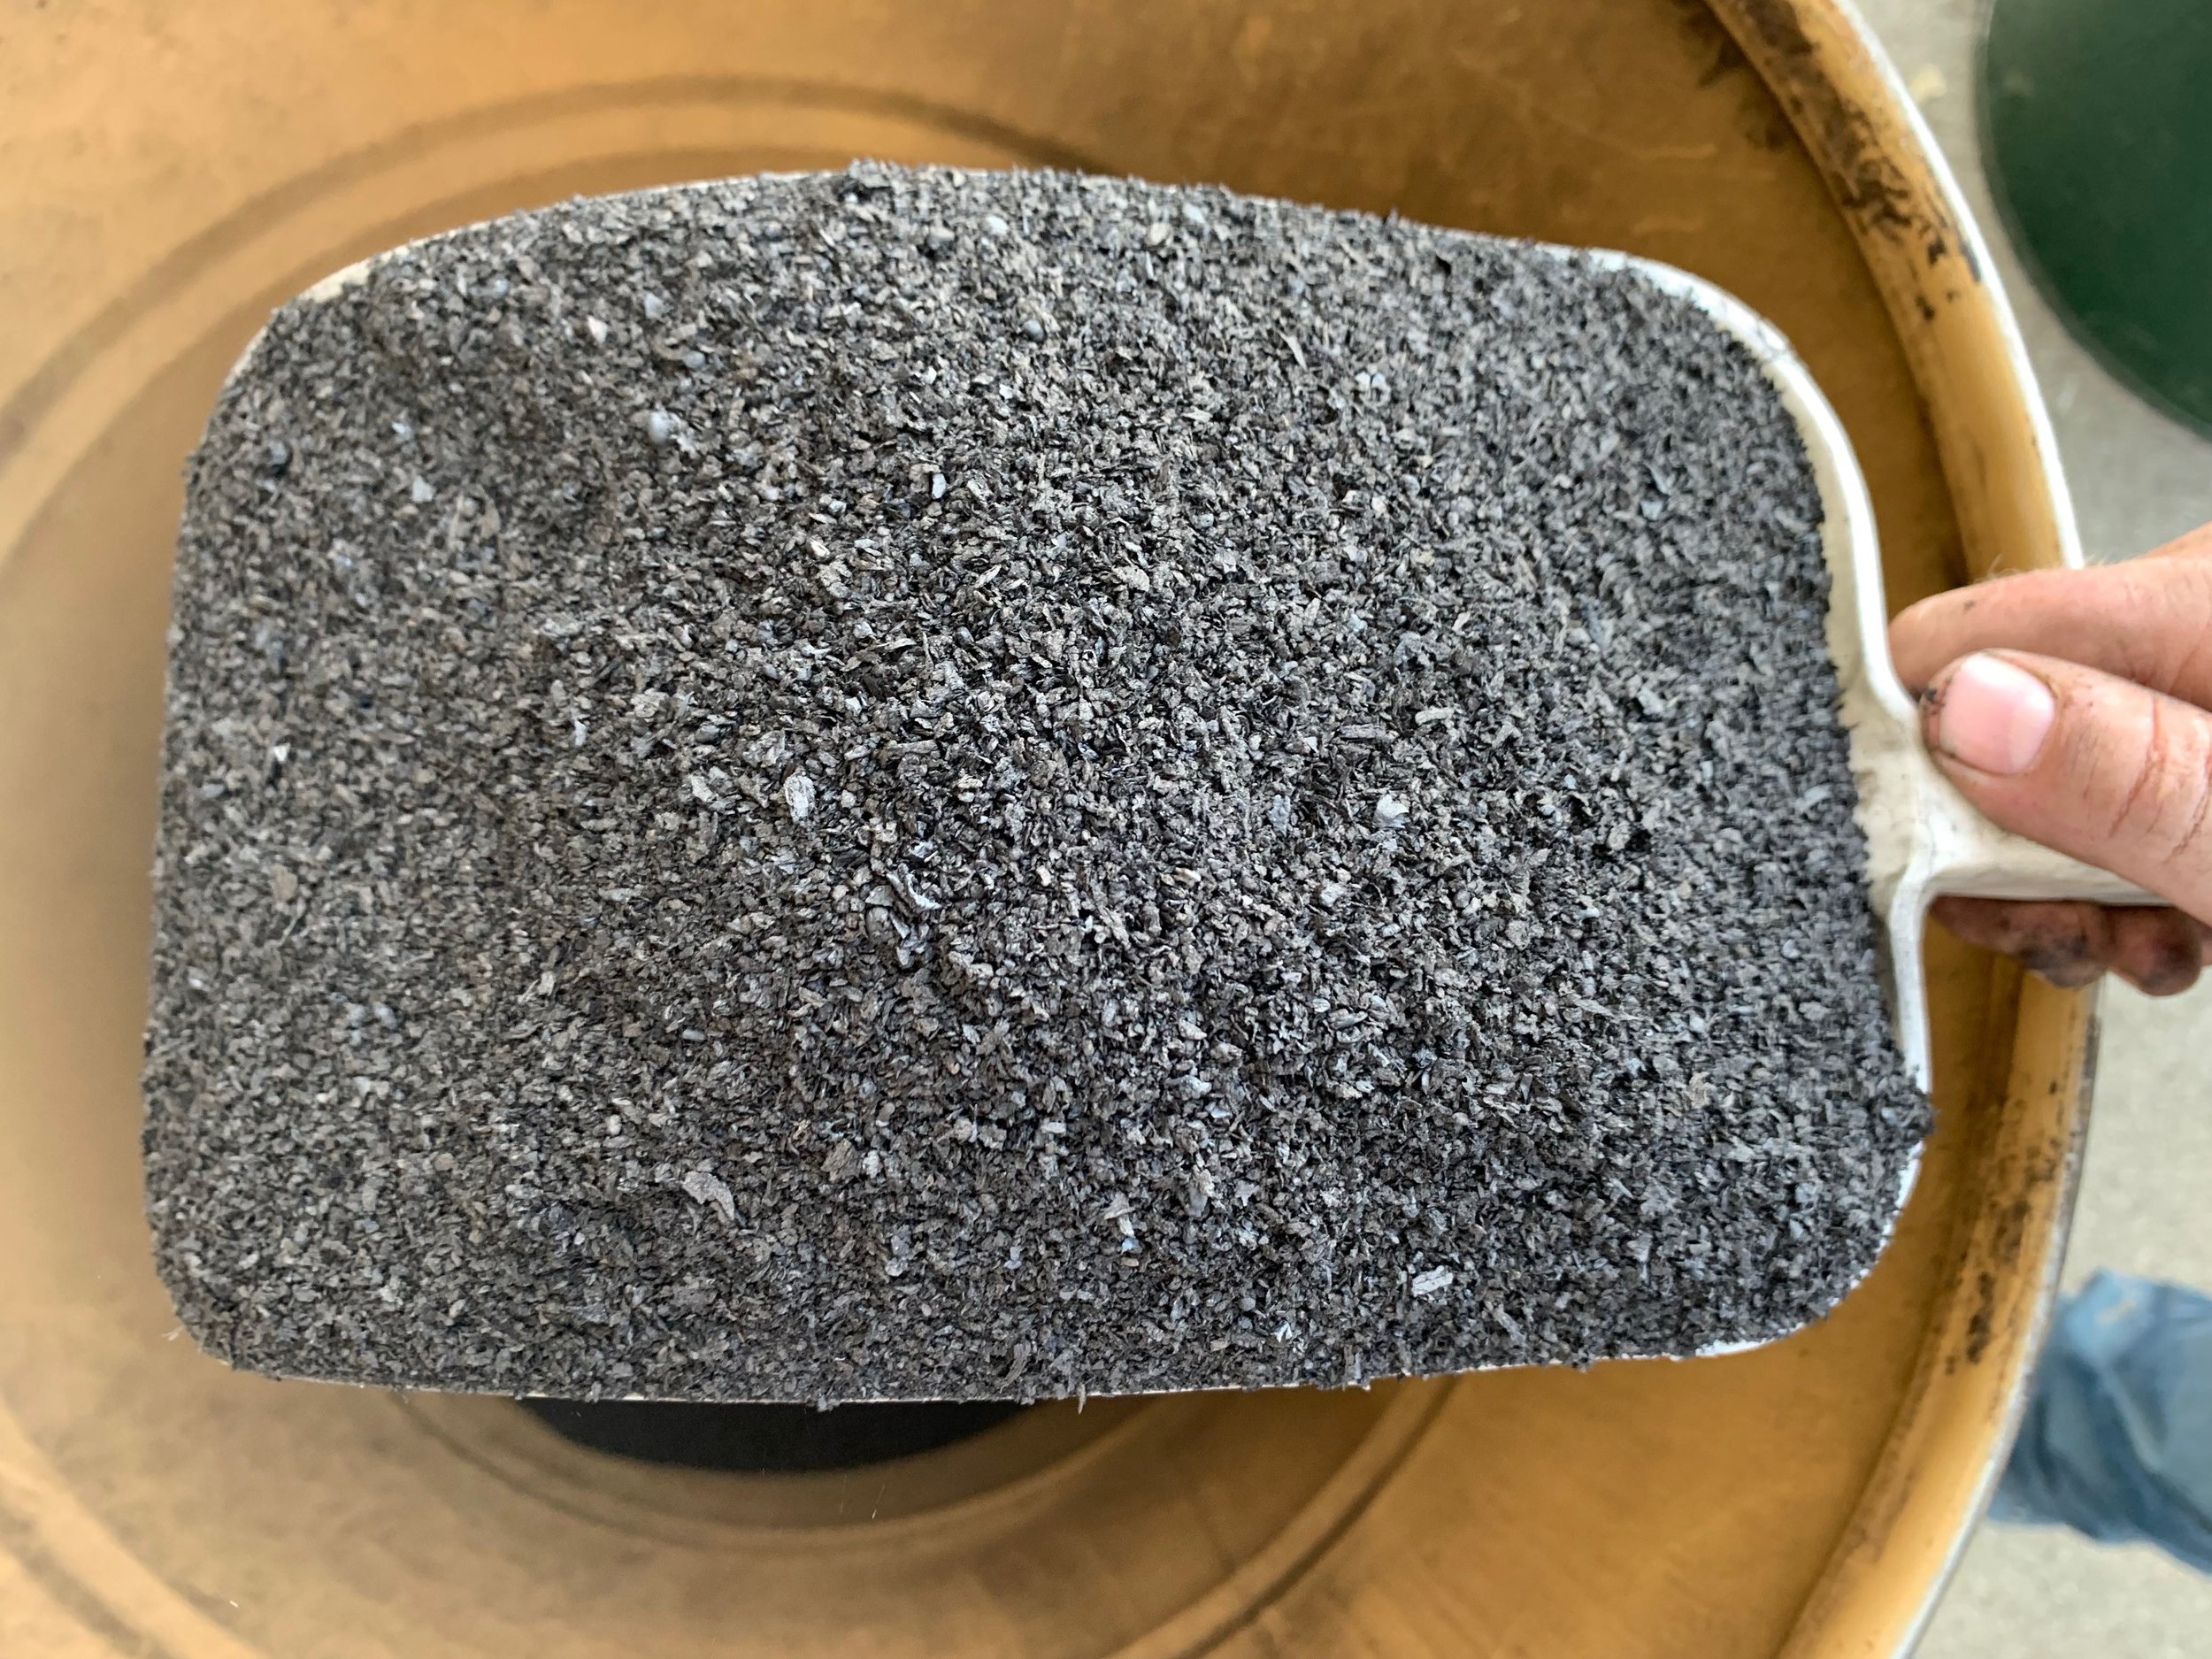 For Sustainable Fuel - Converting waste streams into energy and agricultural inputs such as BIOCHAR